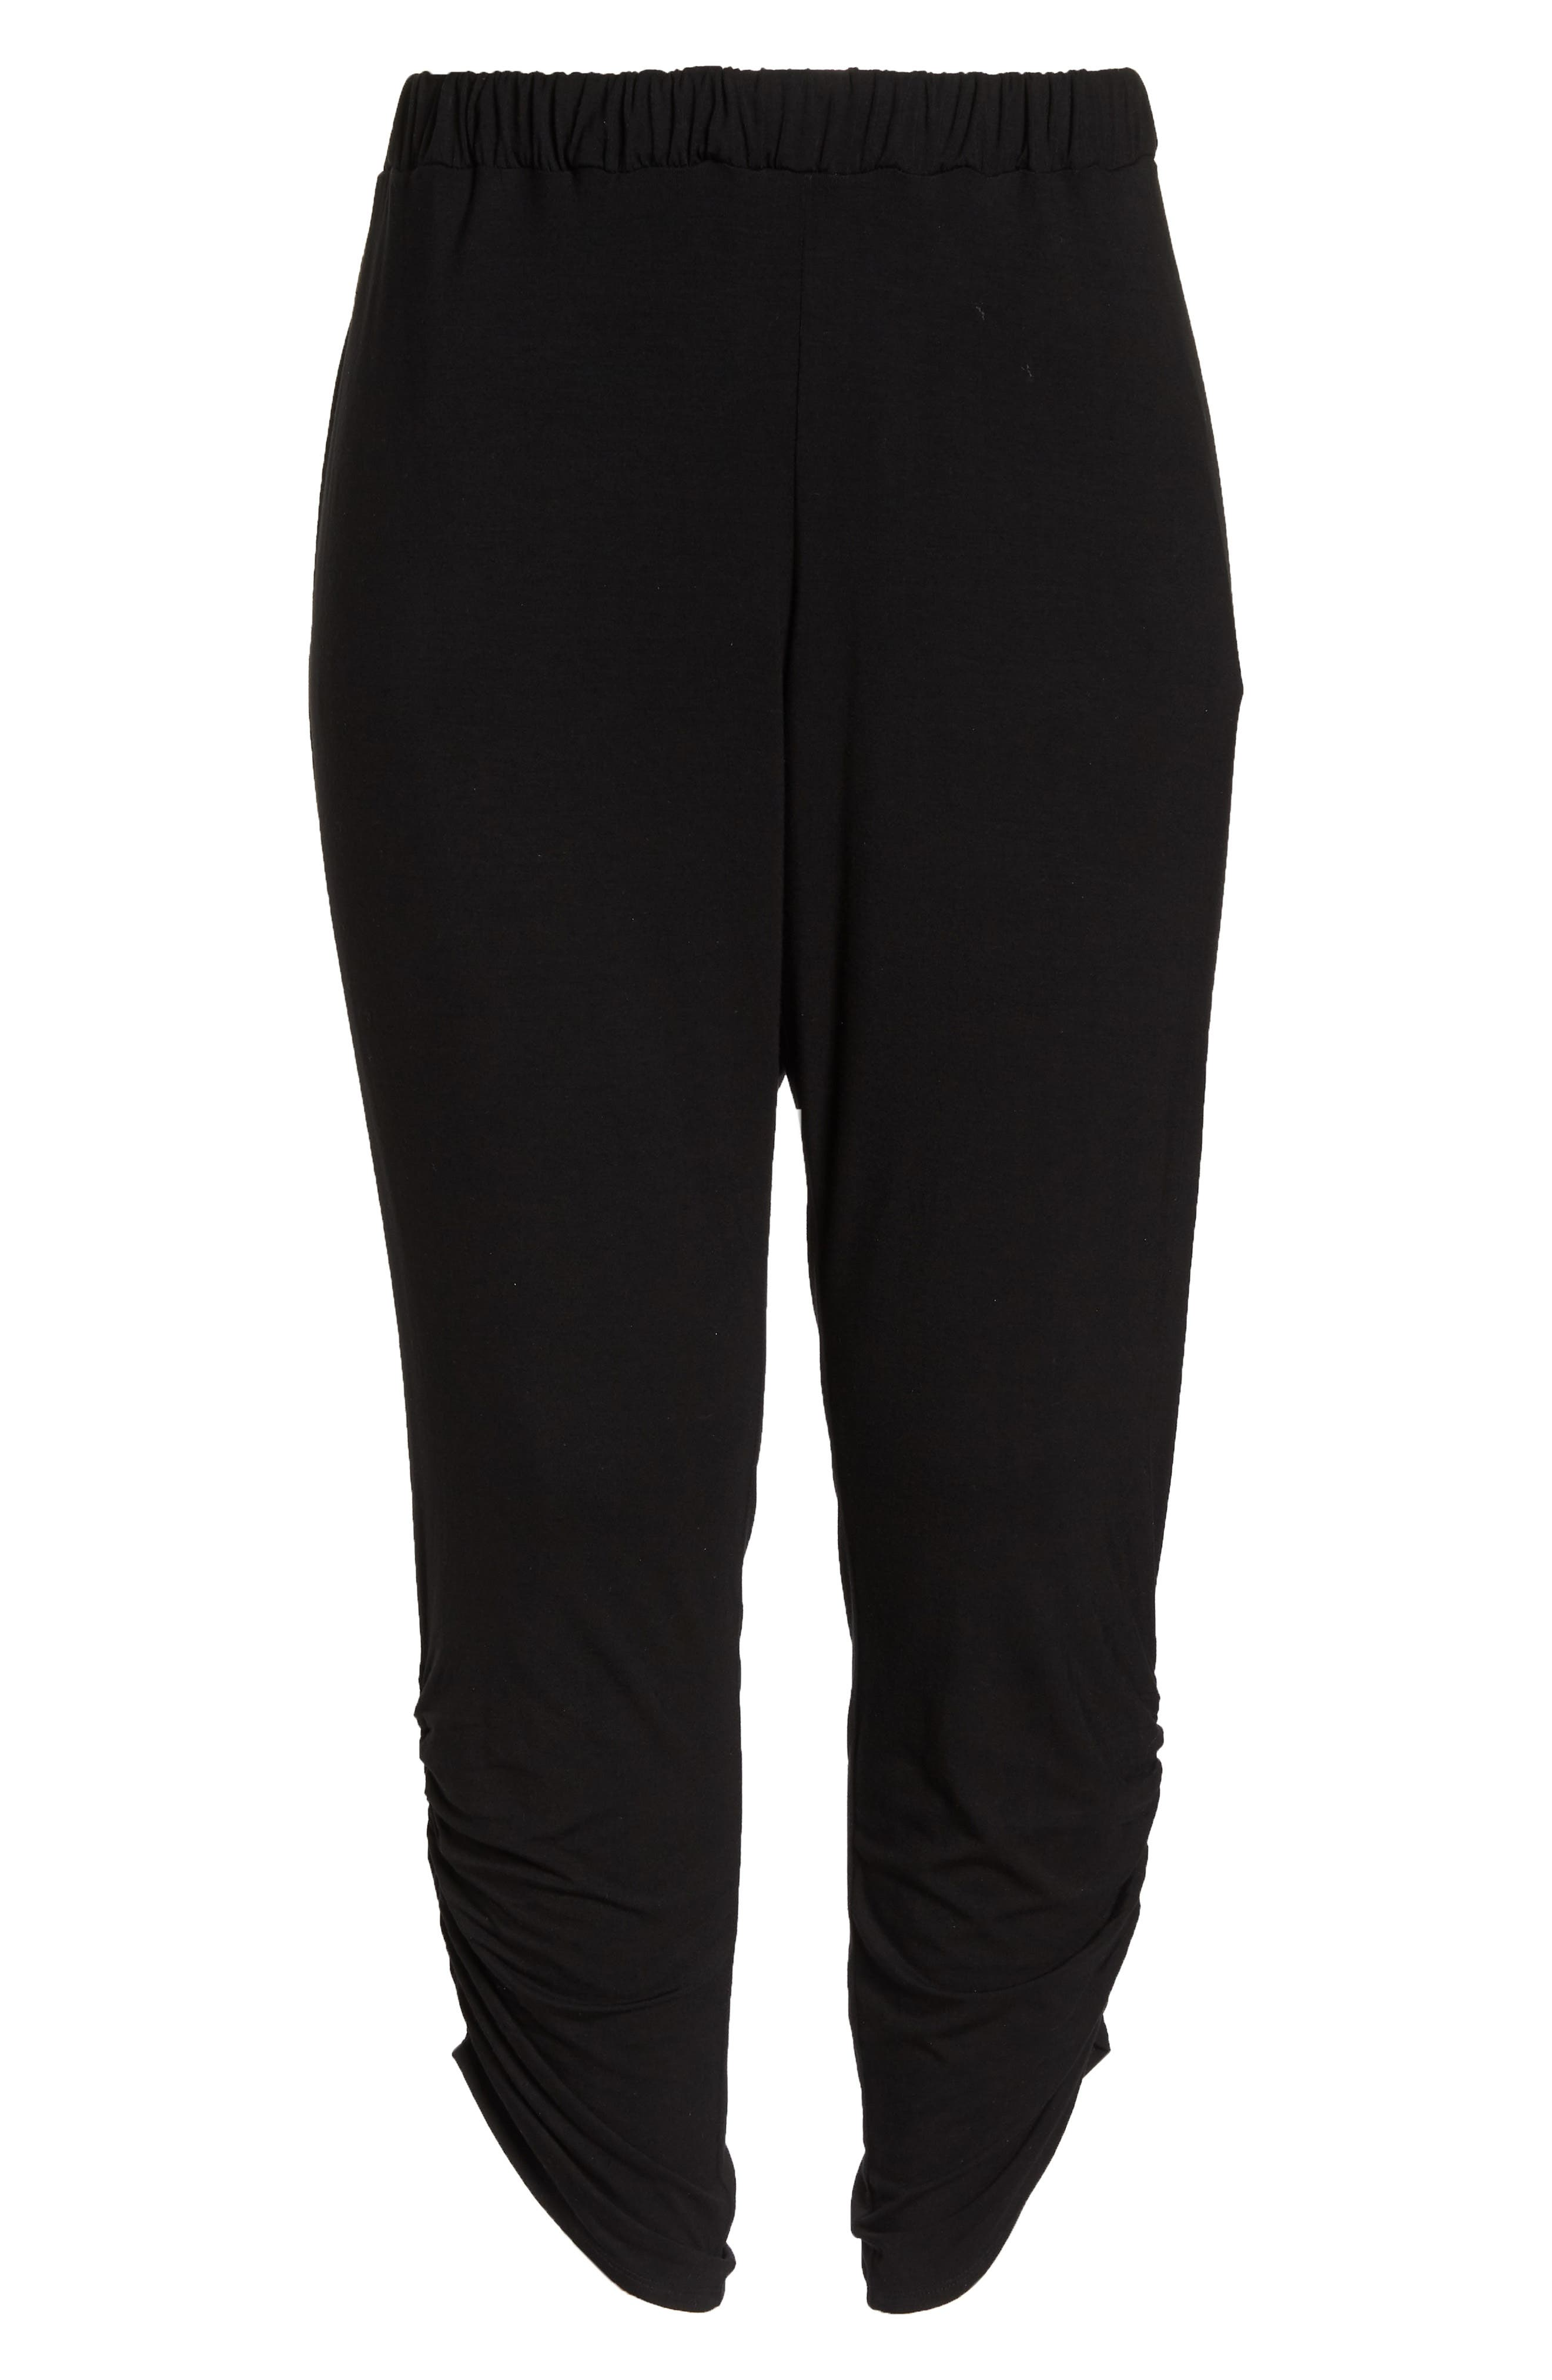 Cinch Hem Harem Pants,                             Alternate thumbnail 7, color,                             001